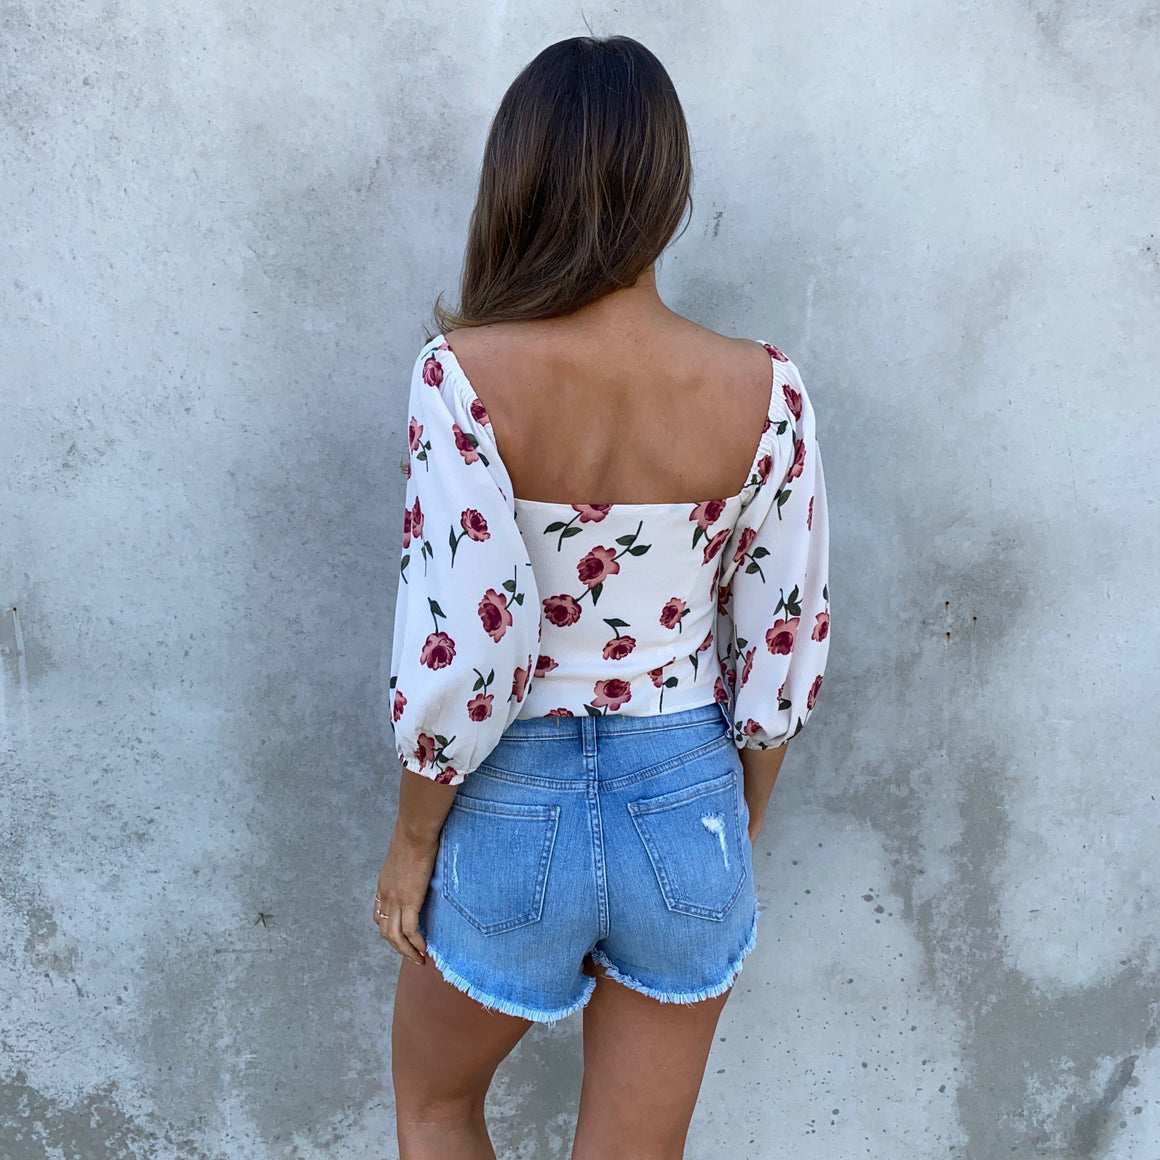 Turn of Events Floral Crop Top - Dainty Hooligan